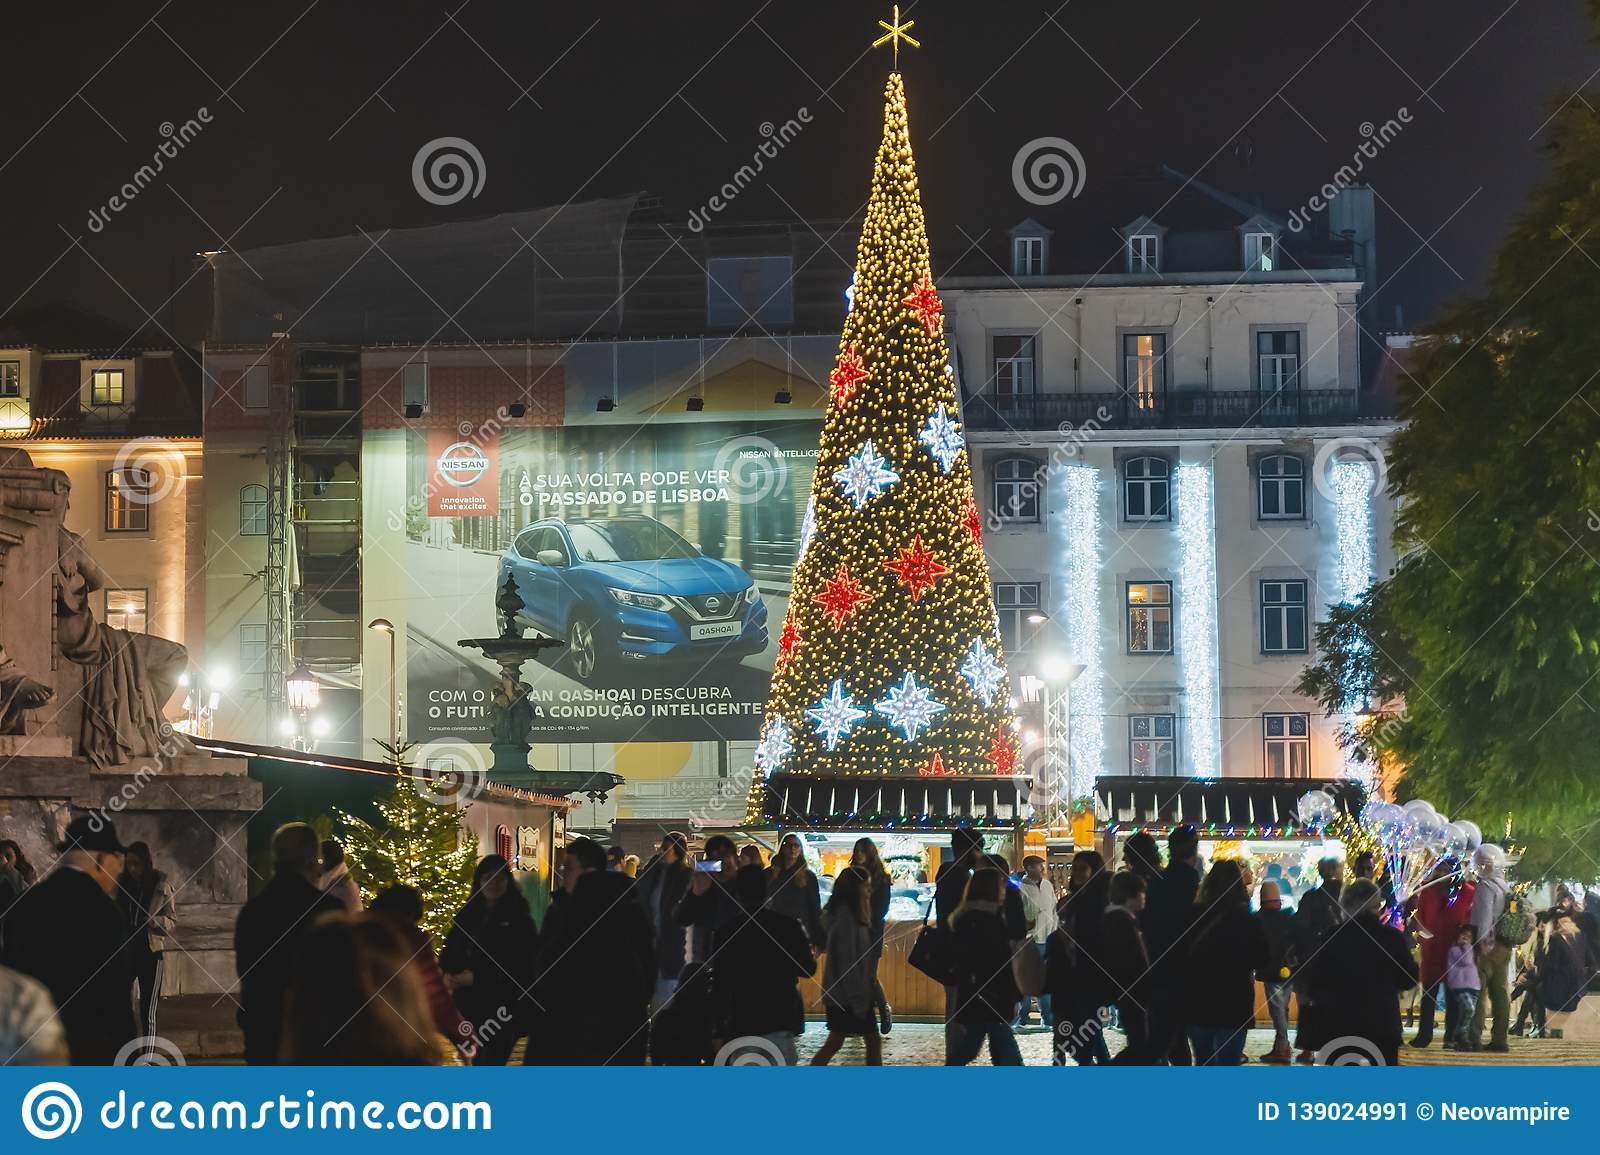 Christmas In Portugal.Lisbon Portugal 12 26 18 Christmas Tree Decorated With